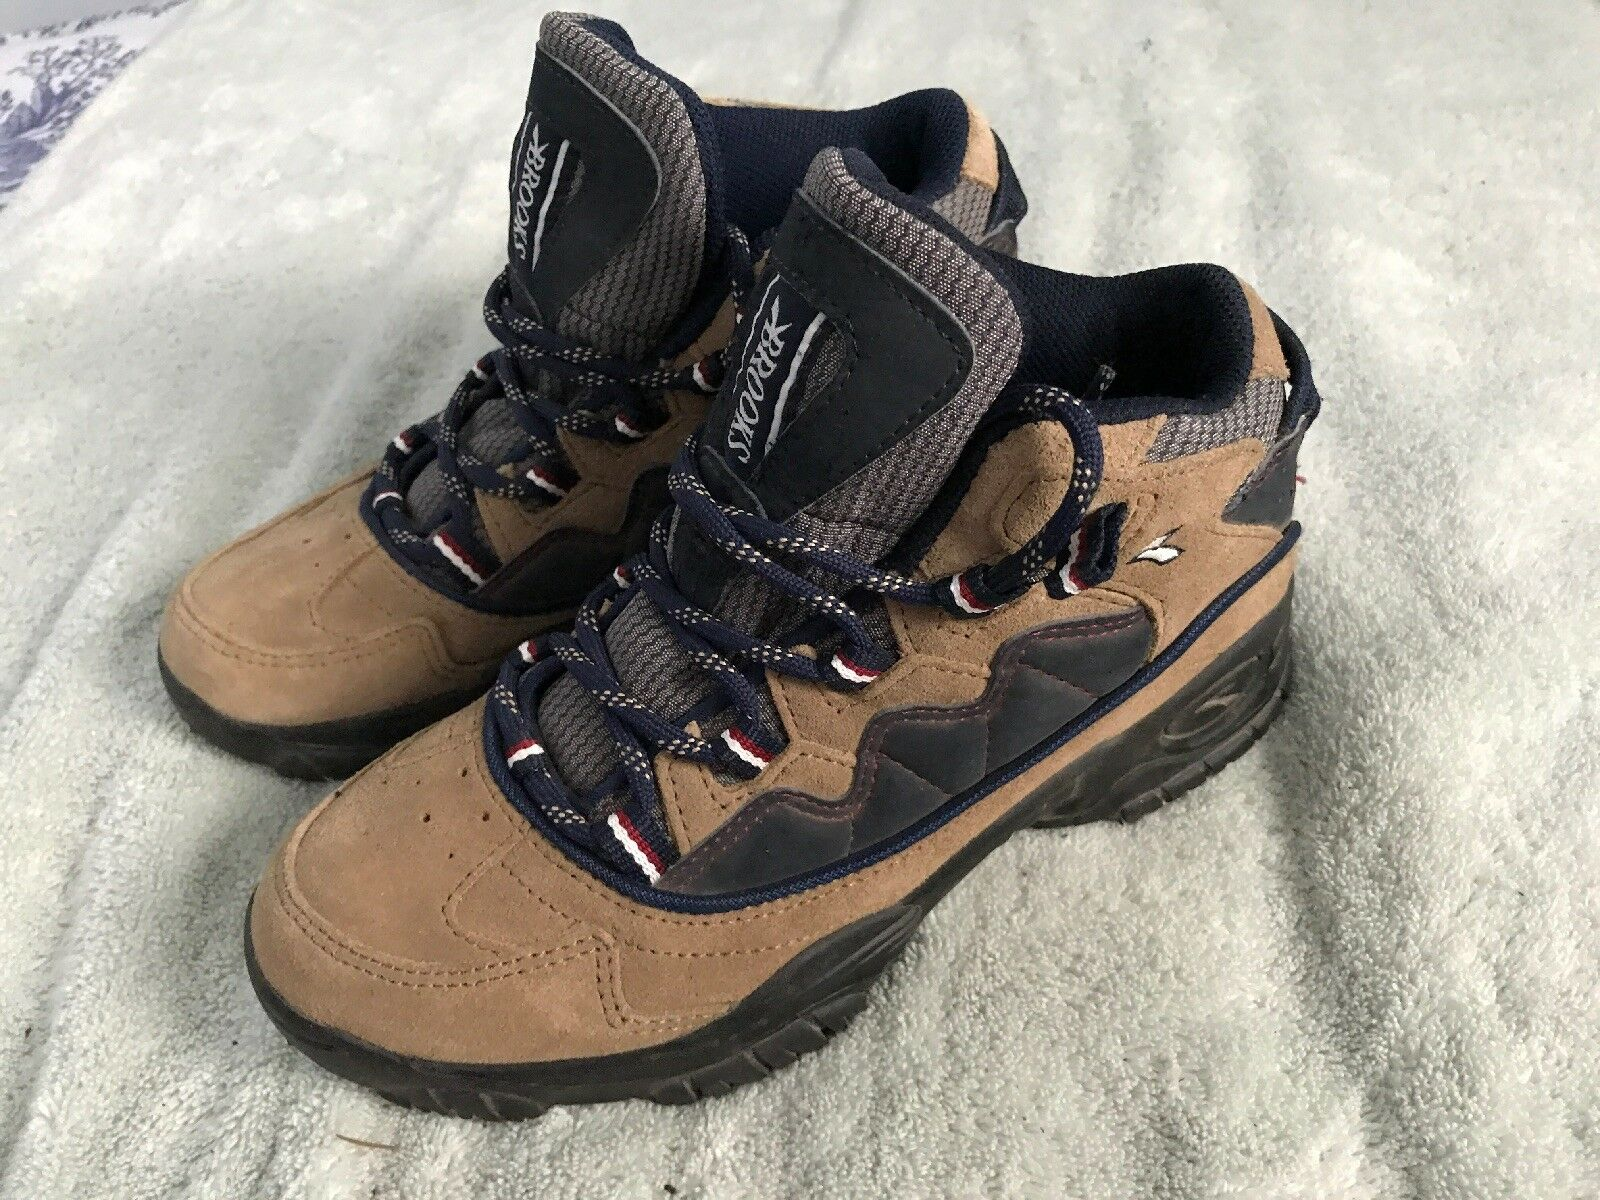 BROOKS Womens sz 7 Leather Hiking Trail Boots Brown SC8